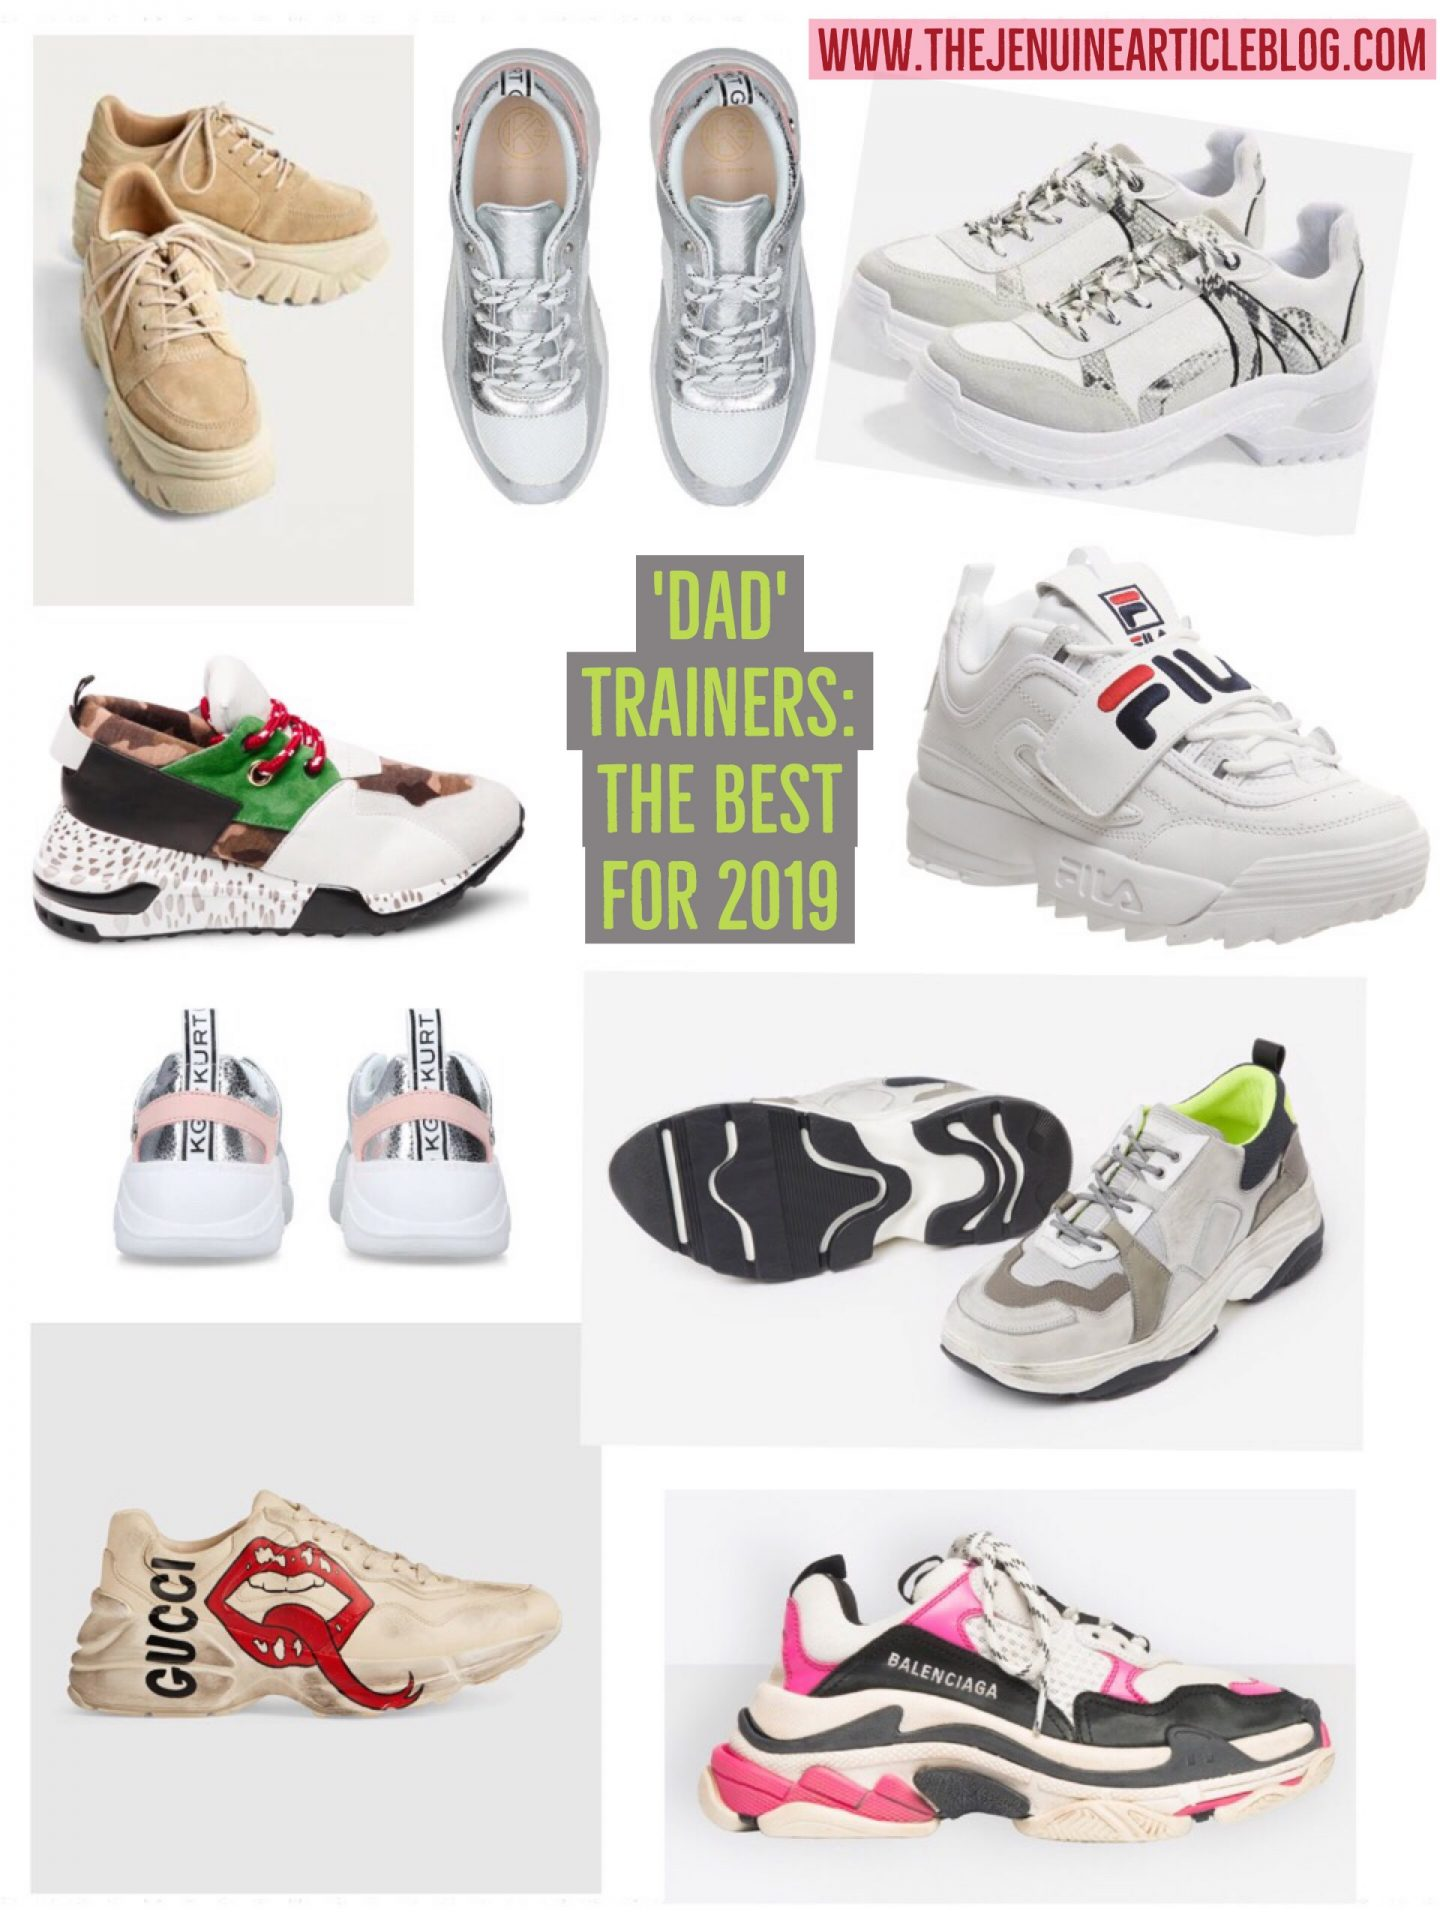 The best trainers for 2019